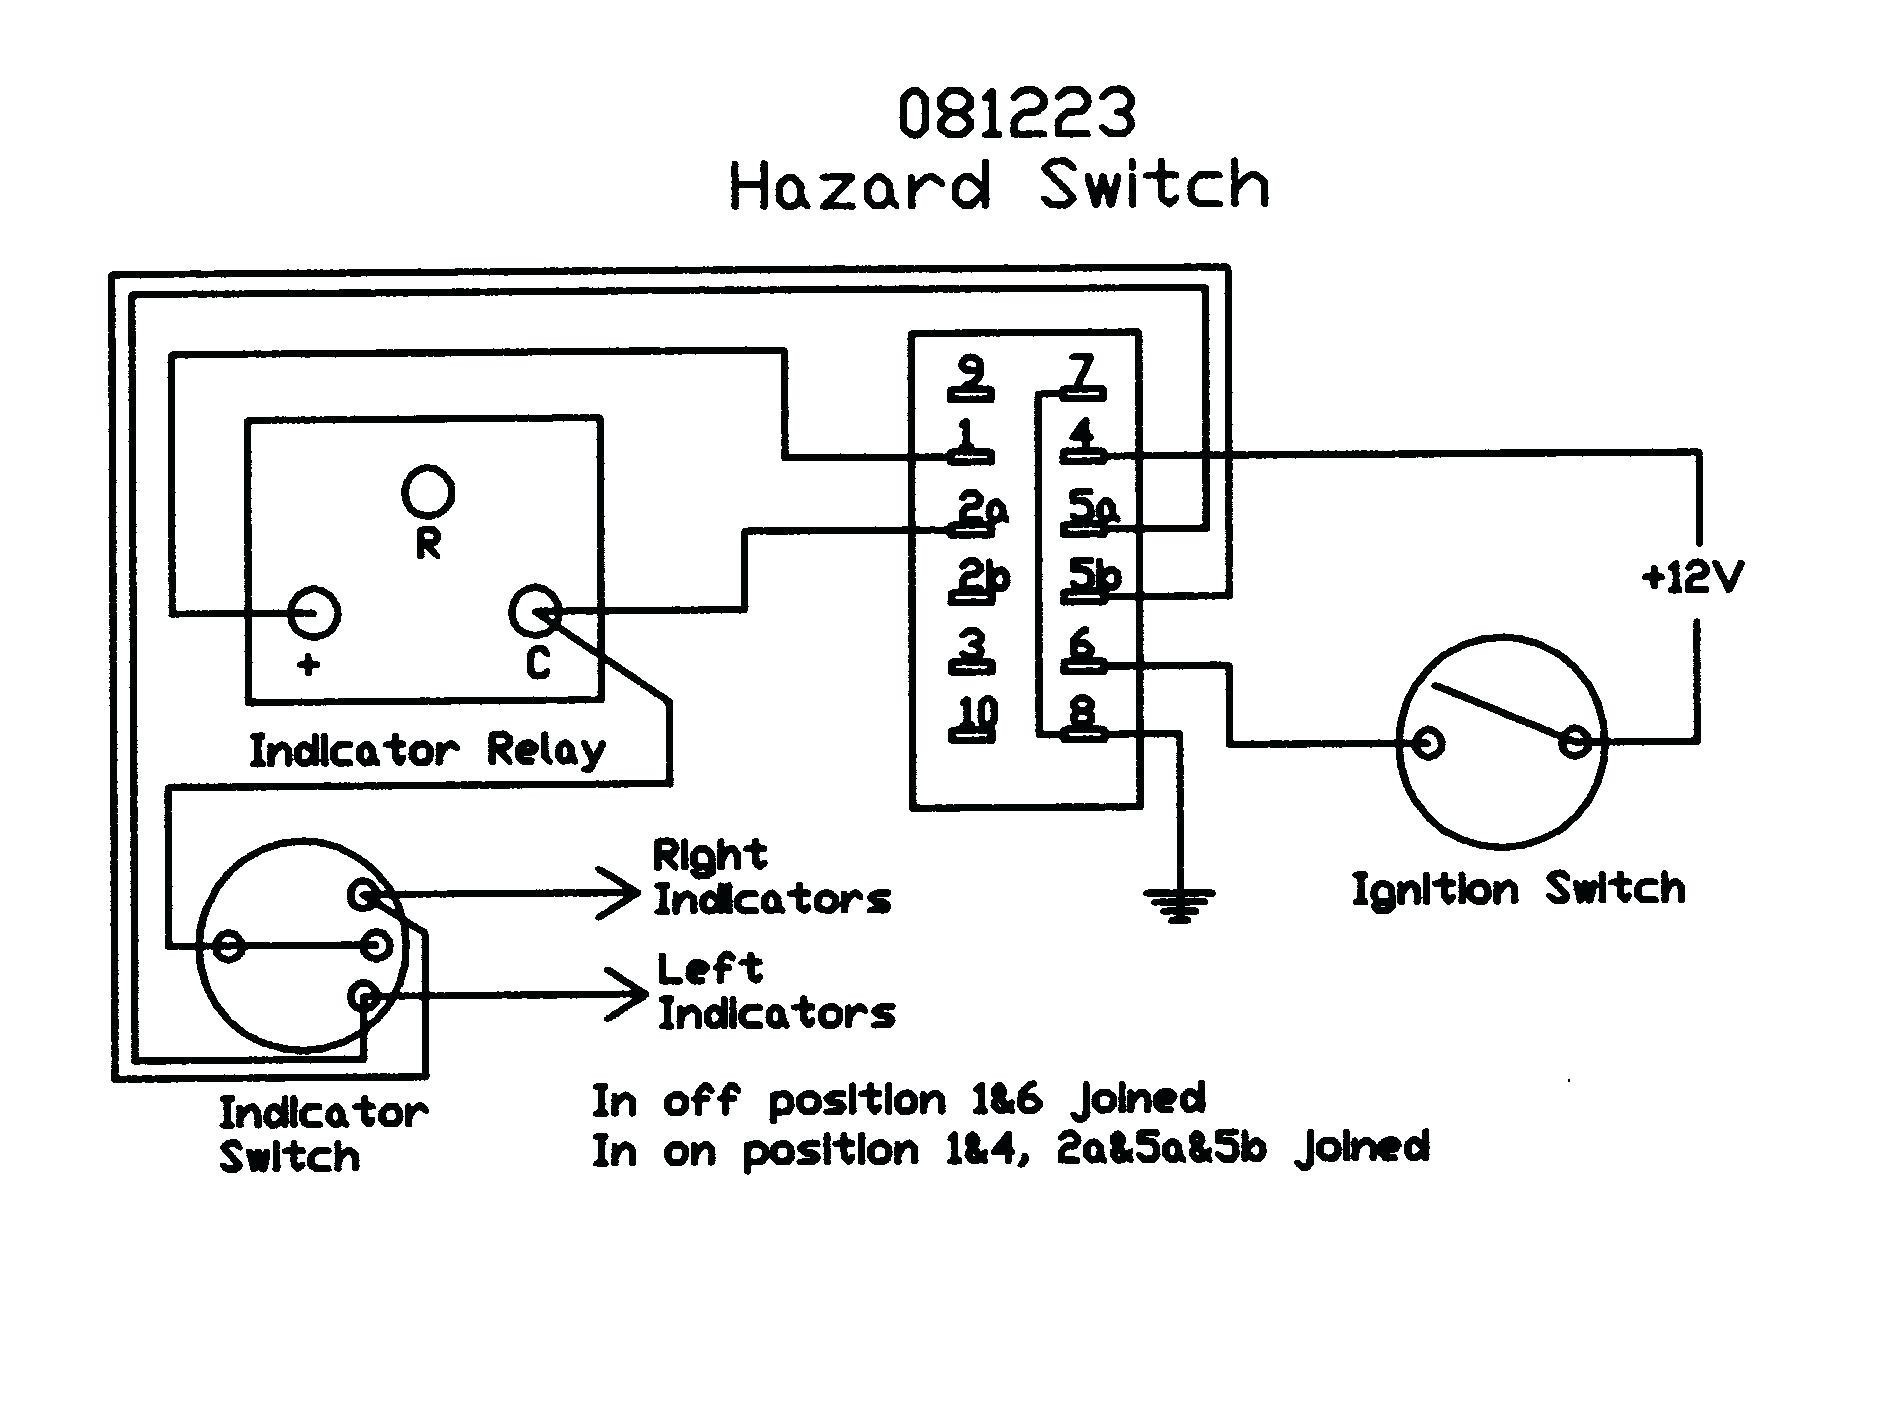 3 Position Toggle Switch Wiring Diagram Reference Wiring Diagram For - 3 Position Ignition Switch Wiring Diagram